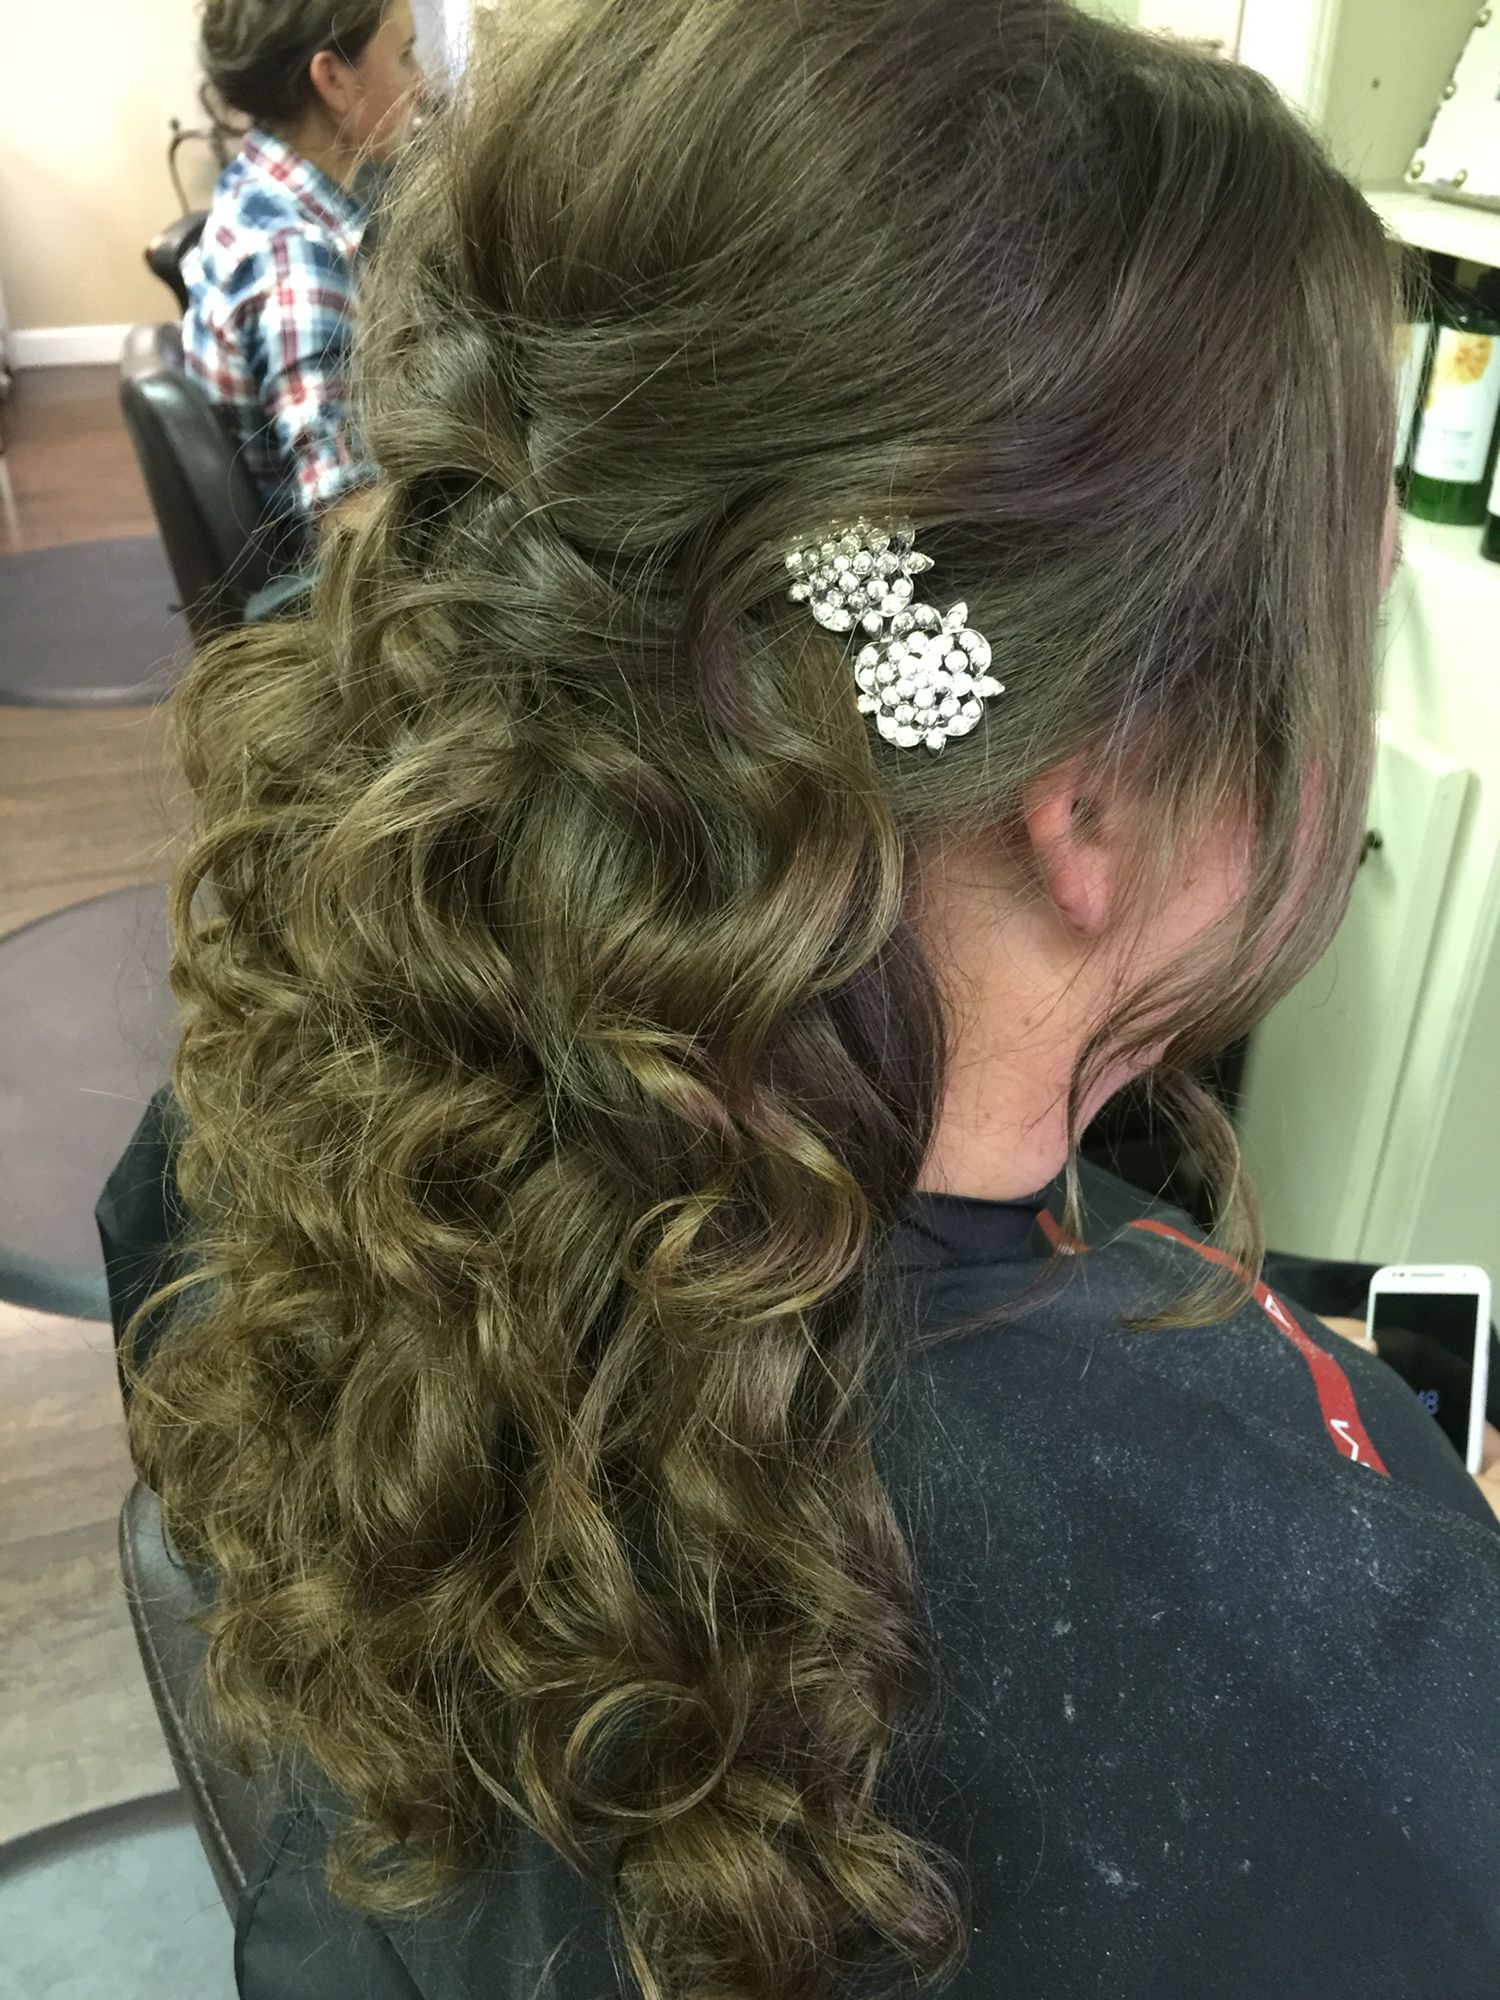 Bride hair Hair Janelle has done